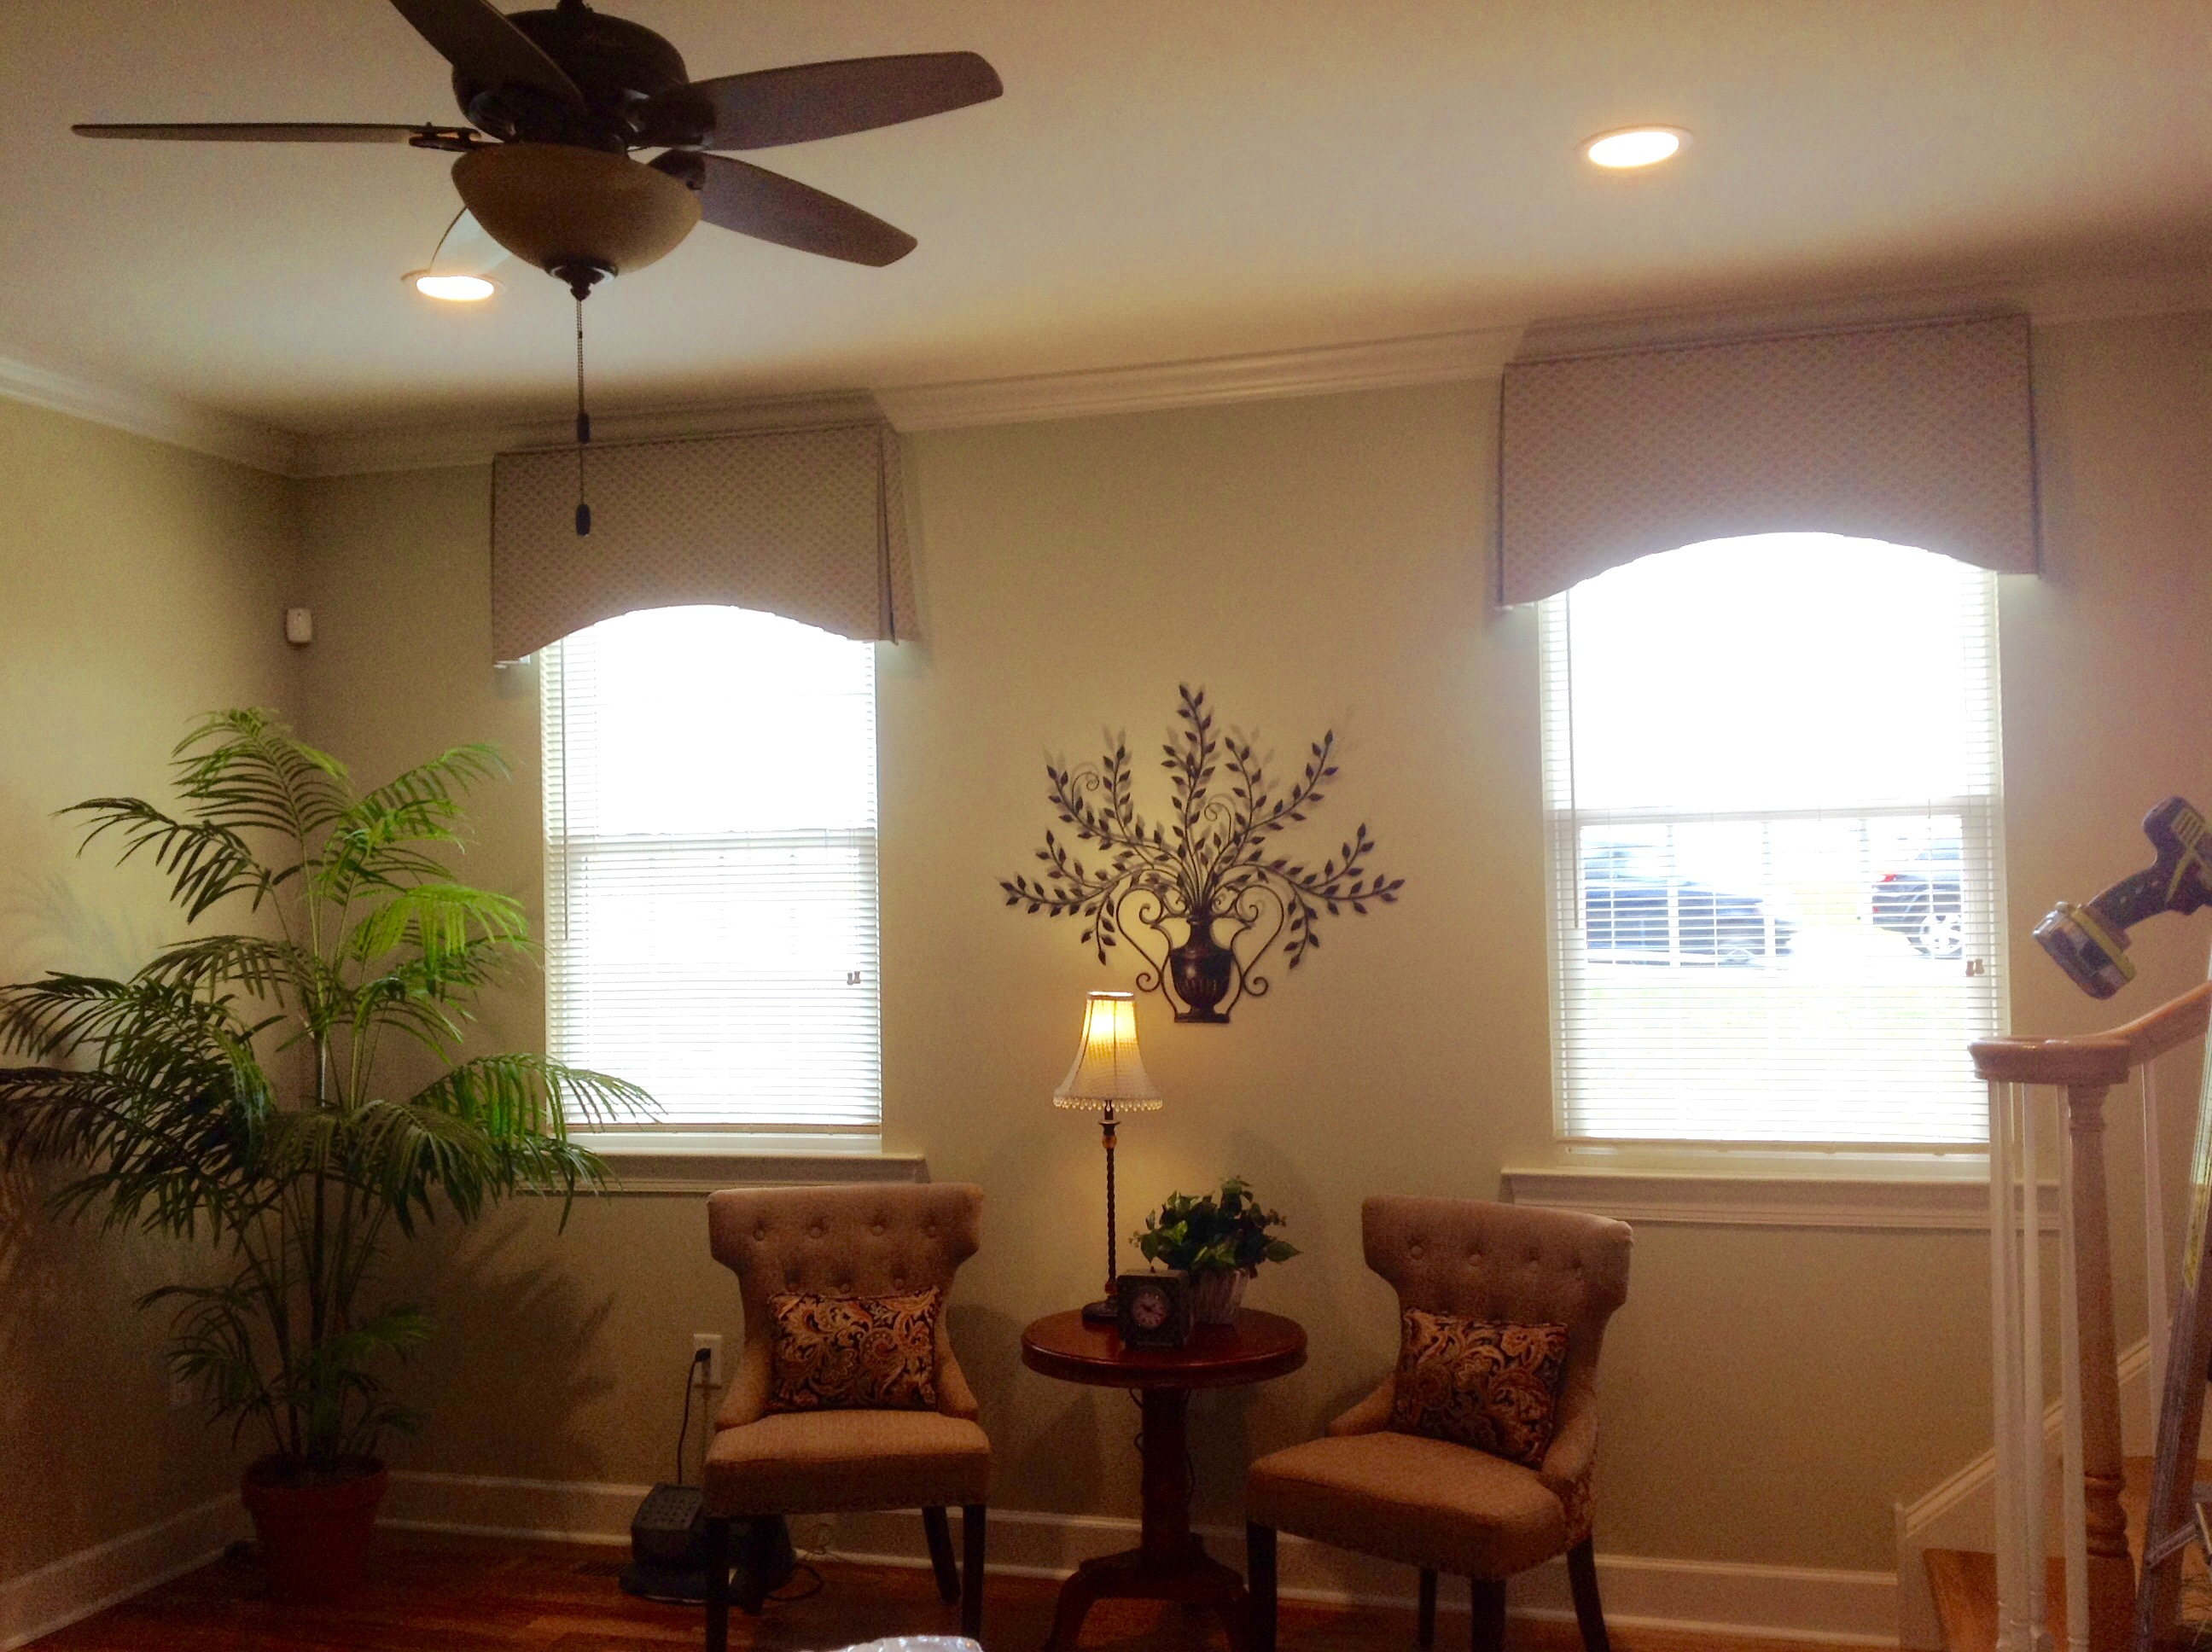 Box pleat arched valances installed ceiling height to elongate and add architectural interest